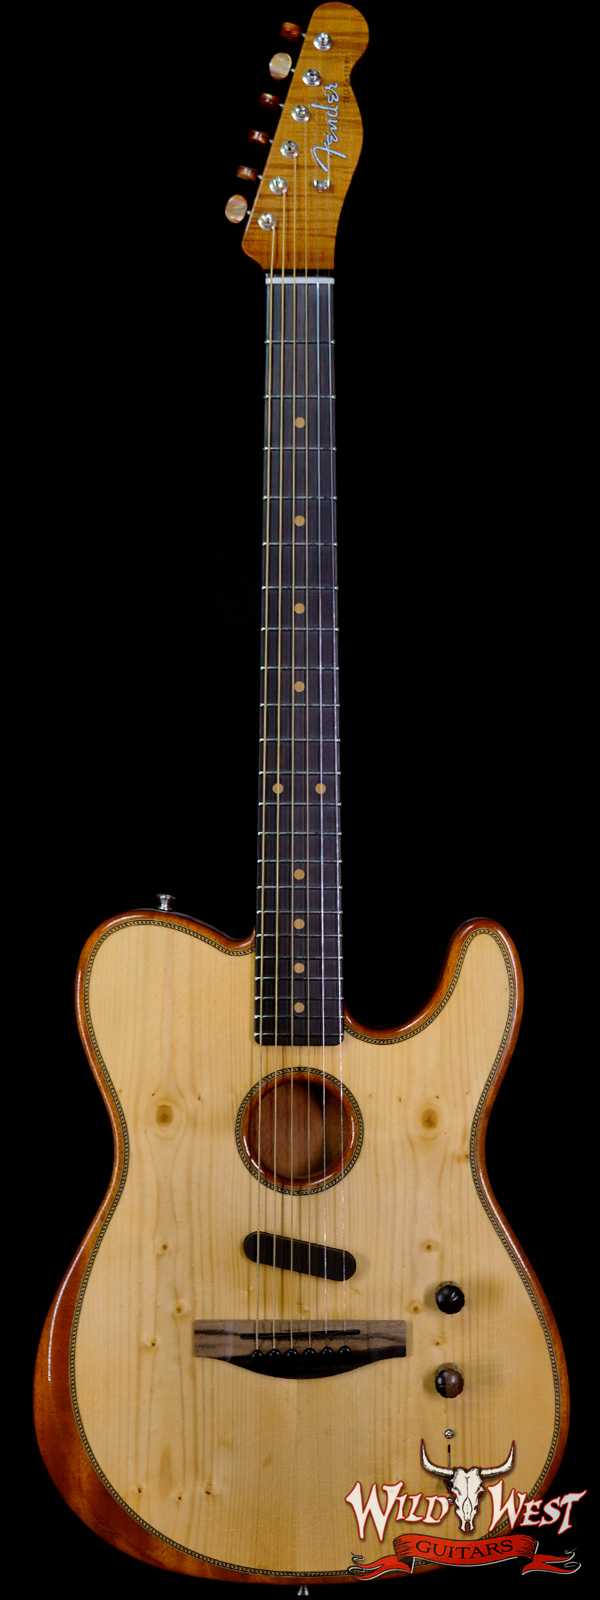 Fender Custom Shop Chris Fleming Masterbuilt Knotty Acoustasonic Telecaster Deluxe Closet Classic